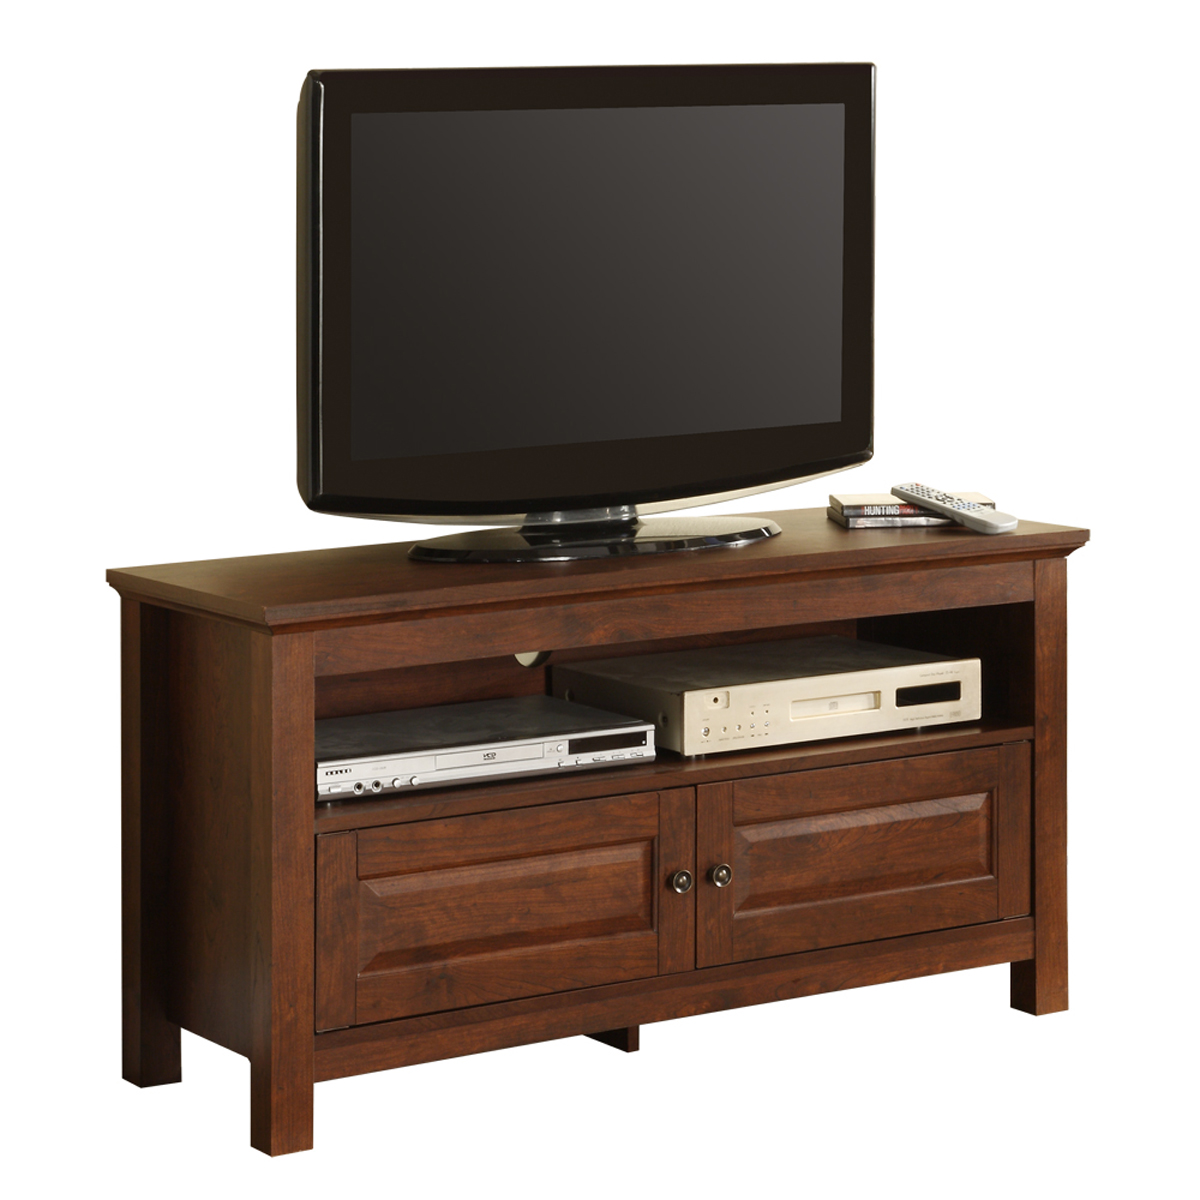 44 inch wood tv stand with media storage by walker edison. Black Bedroom Furniture Sets. Home Design Ideas